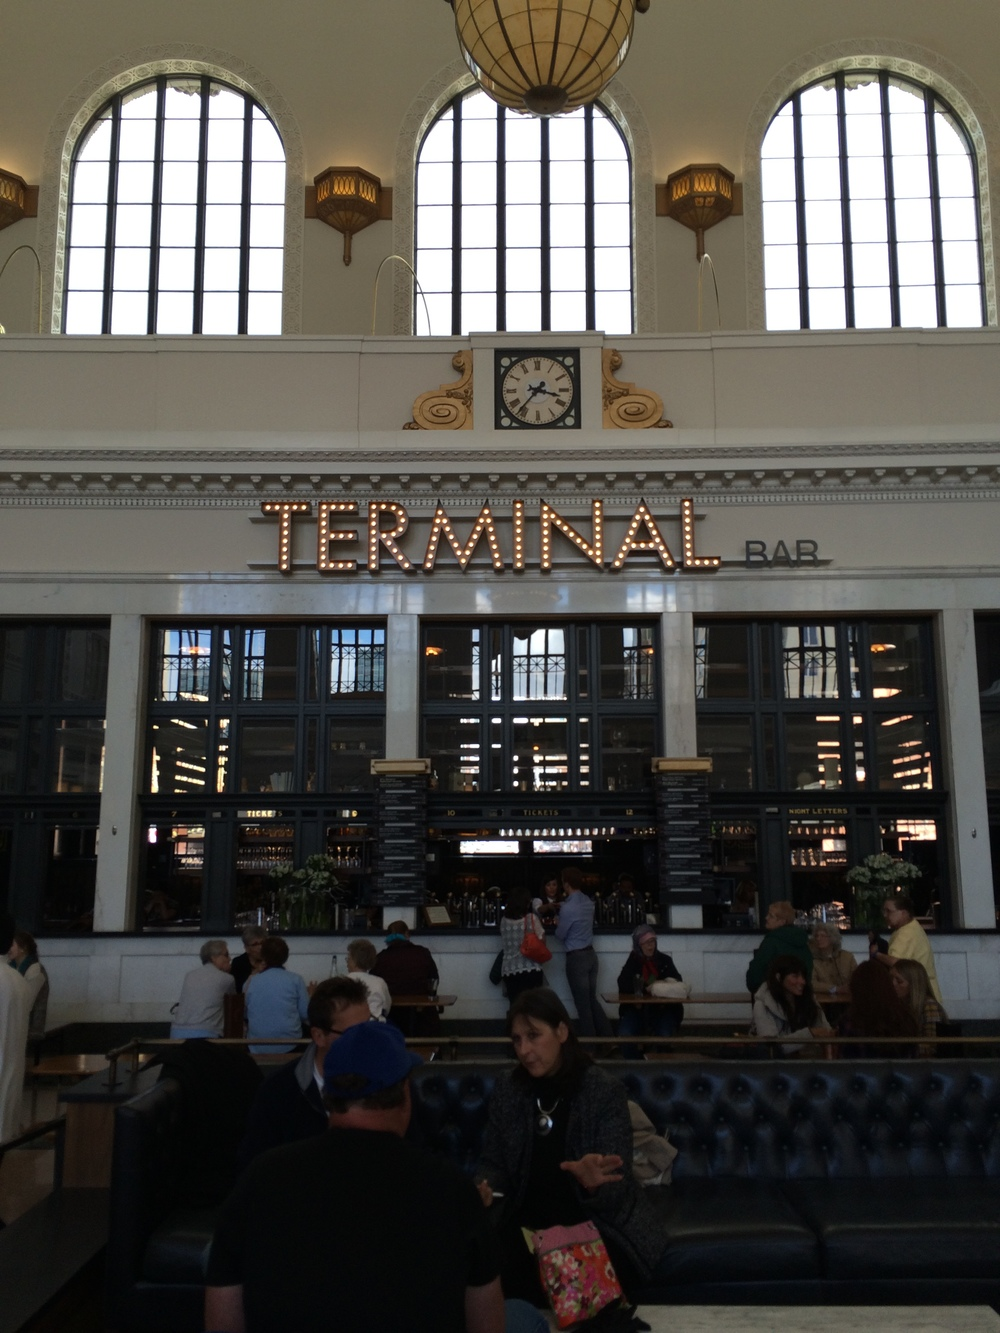 Terminal Bar @ Union Station